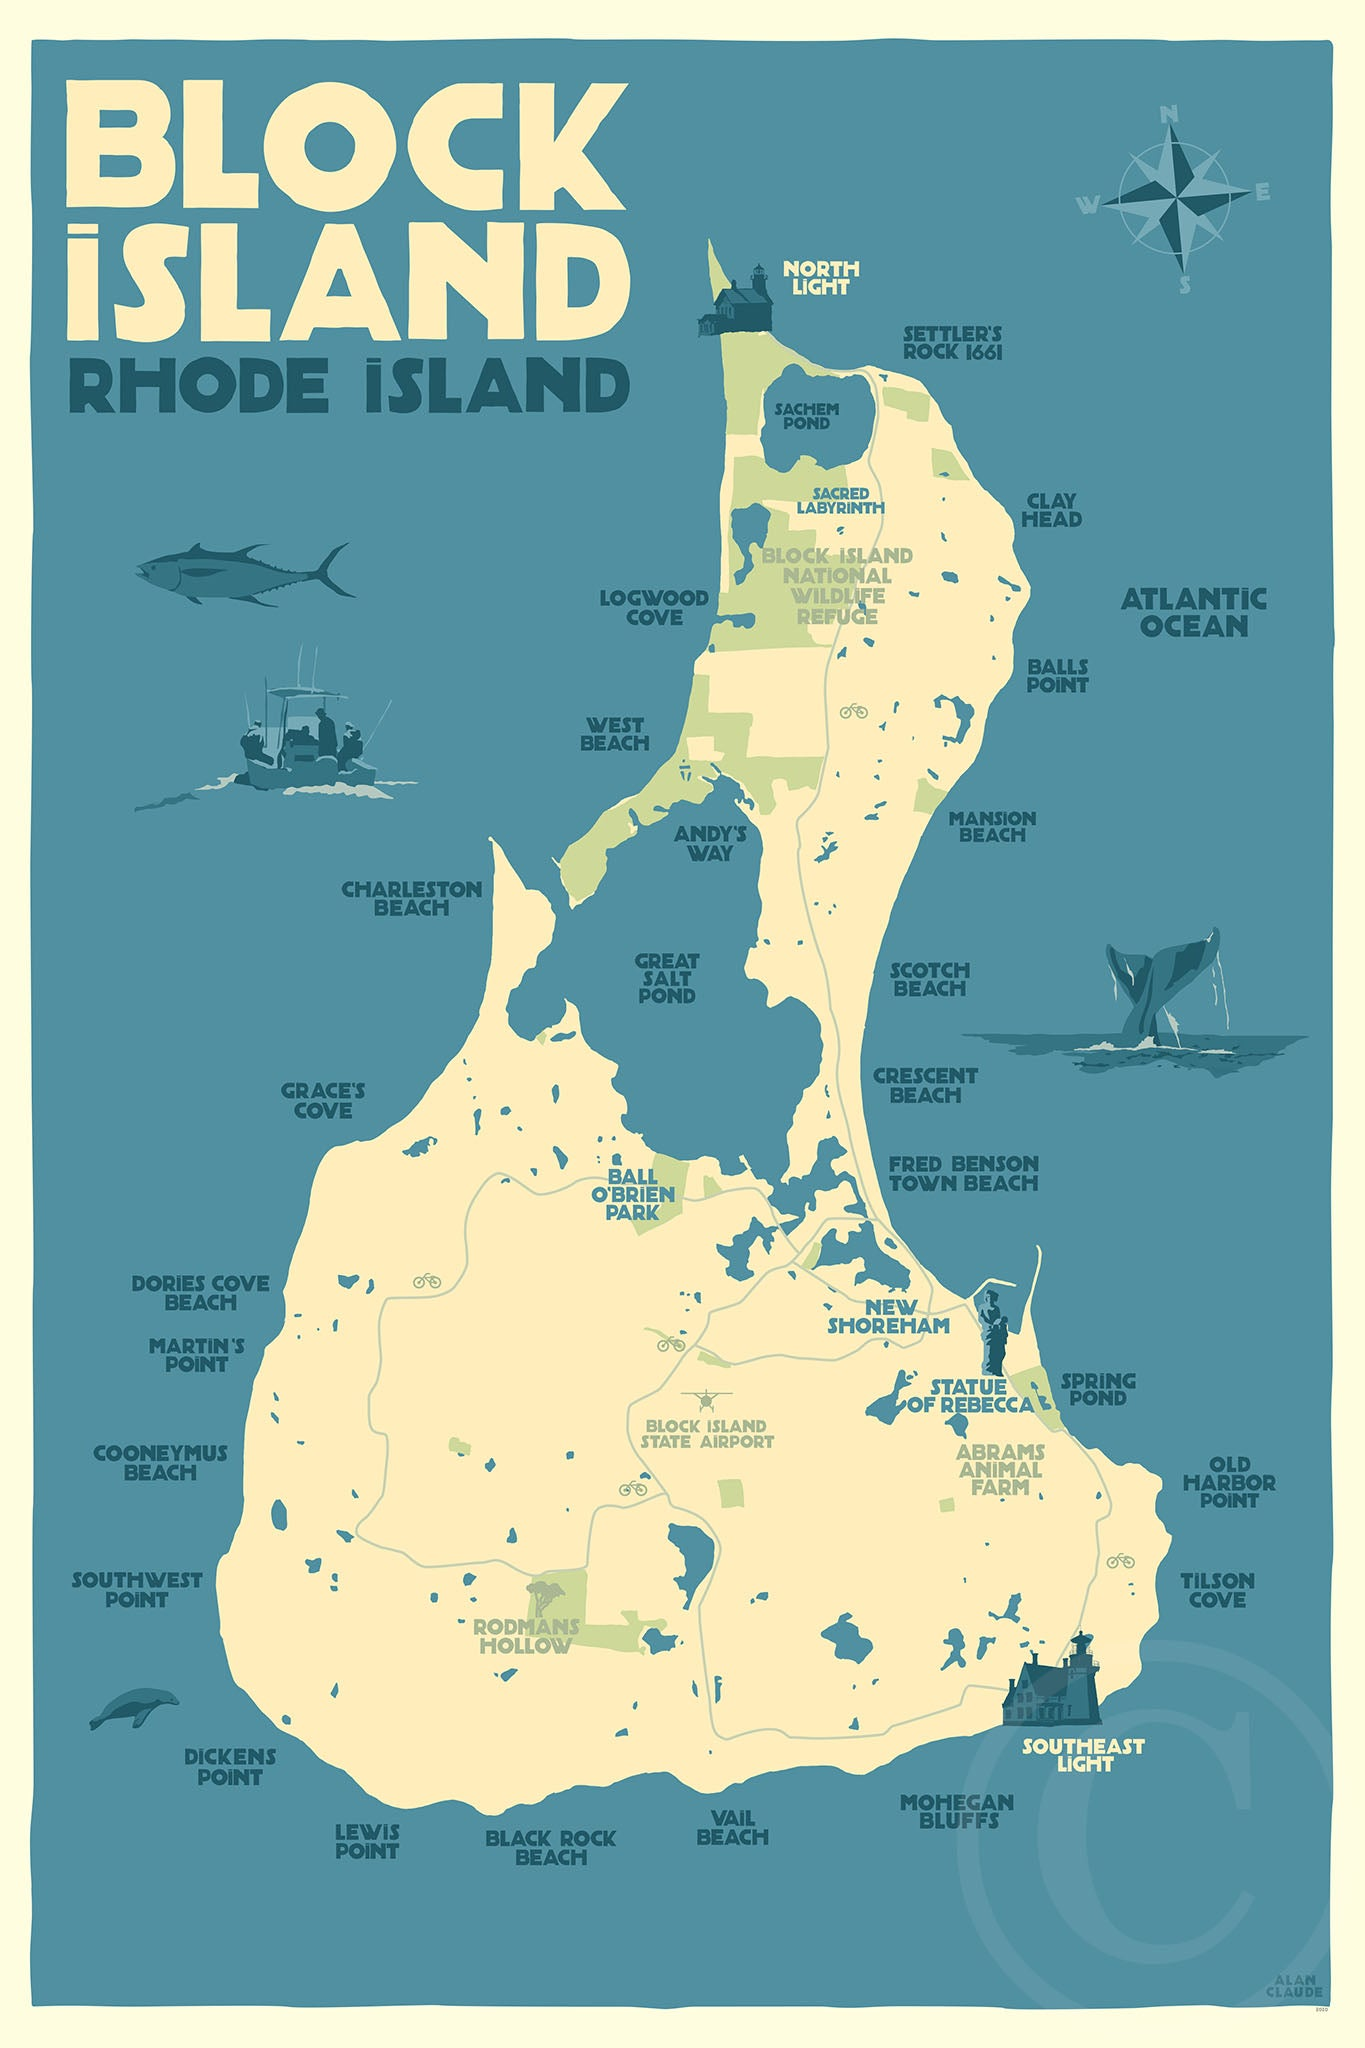 "Block Island Map Art Print 24"" x 36"" Travel Poster - Rhode Island"